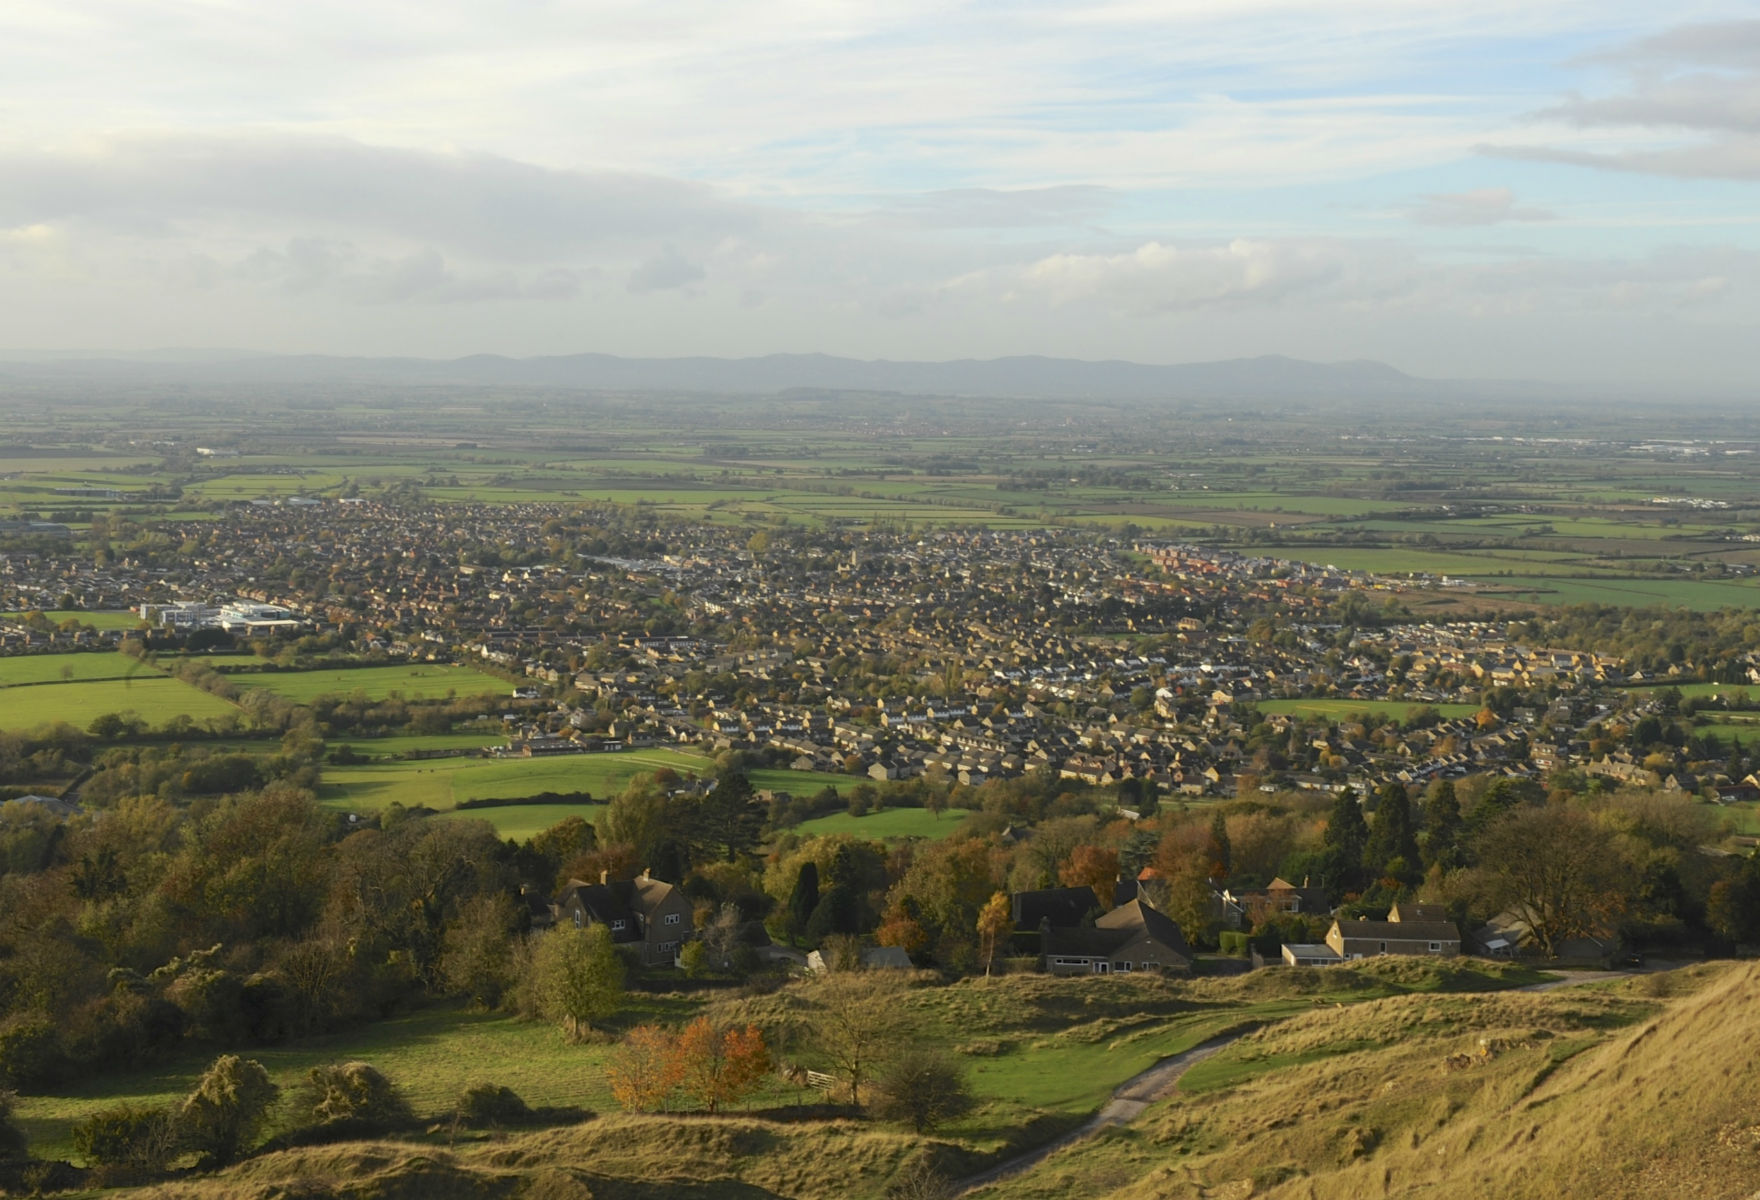 View from Cleeve Hill (credit: Peter Turner Photography/Shutterstock)